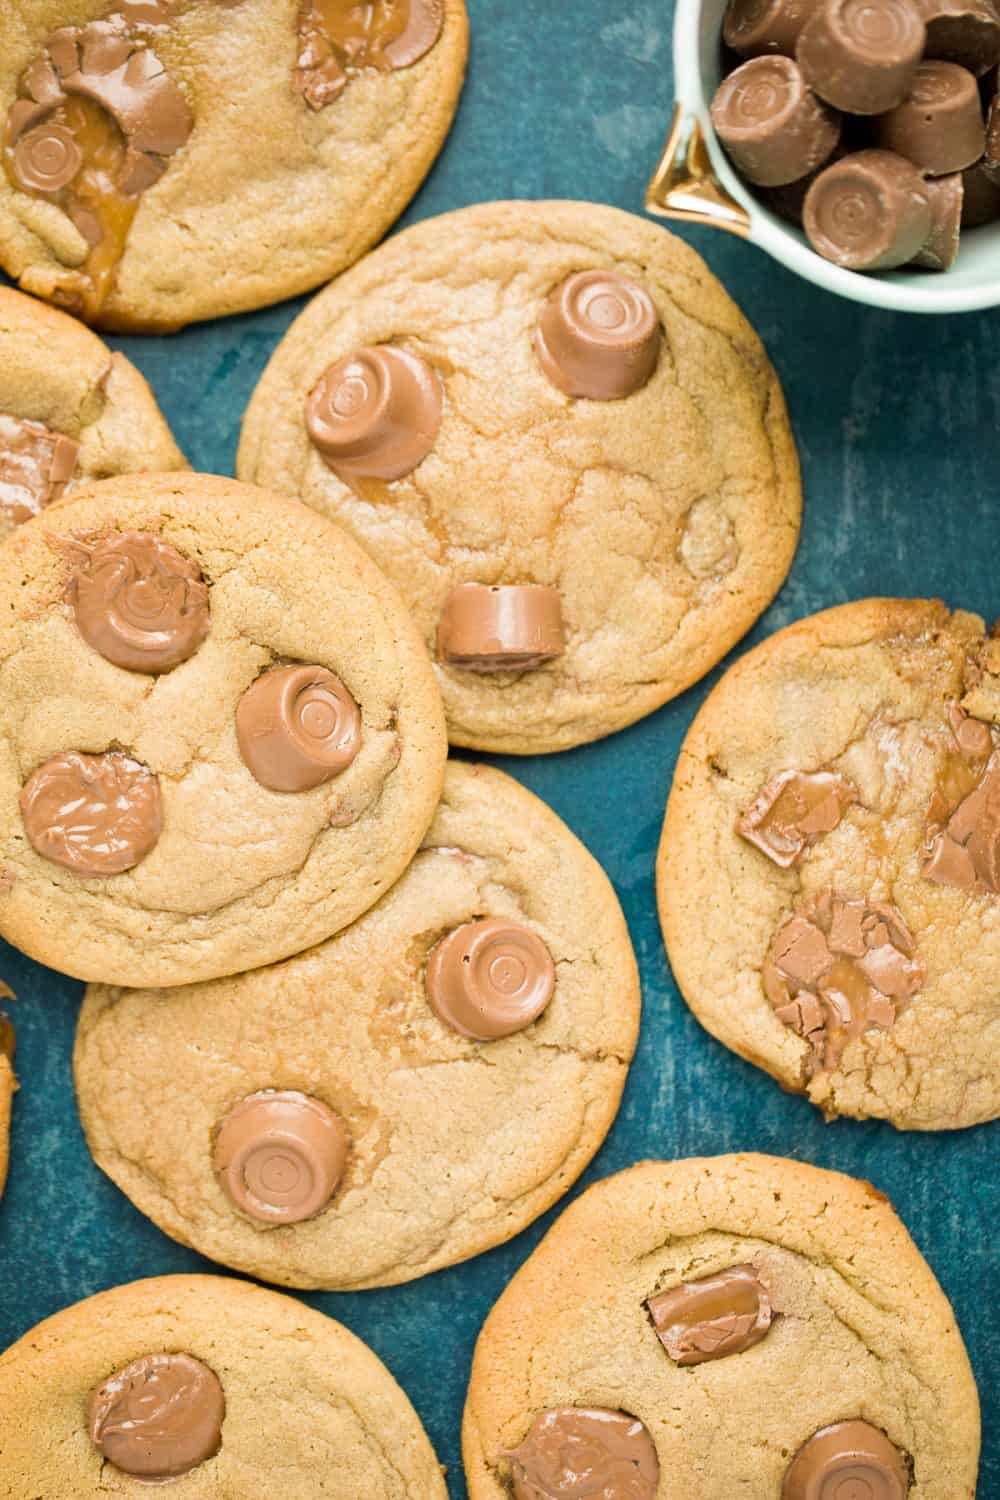 Soft and chewy cookies with melted rolos and chocolate chips.